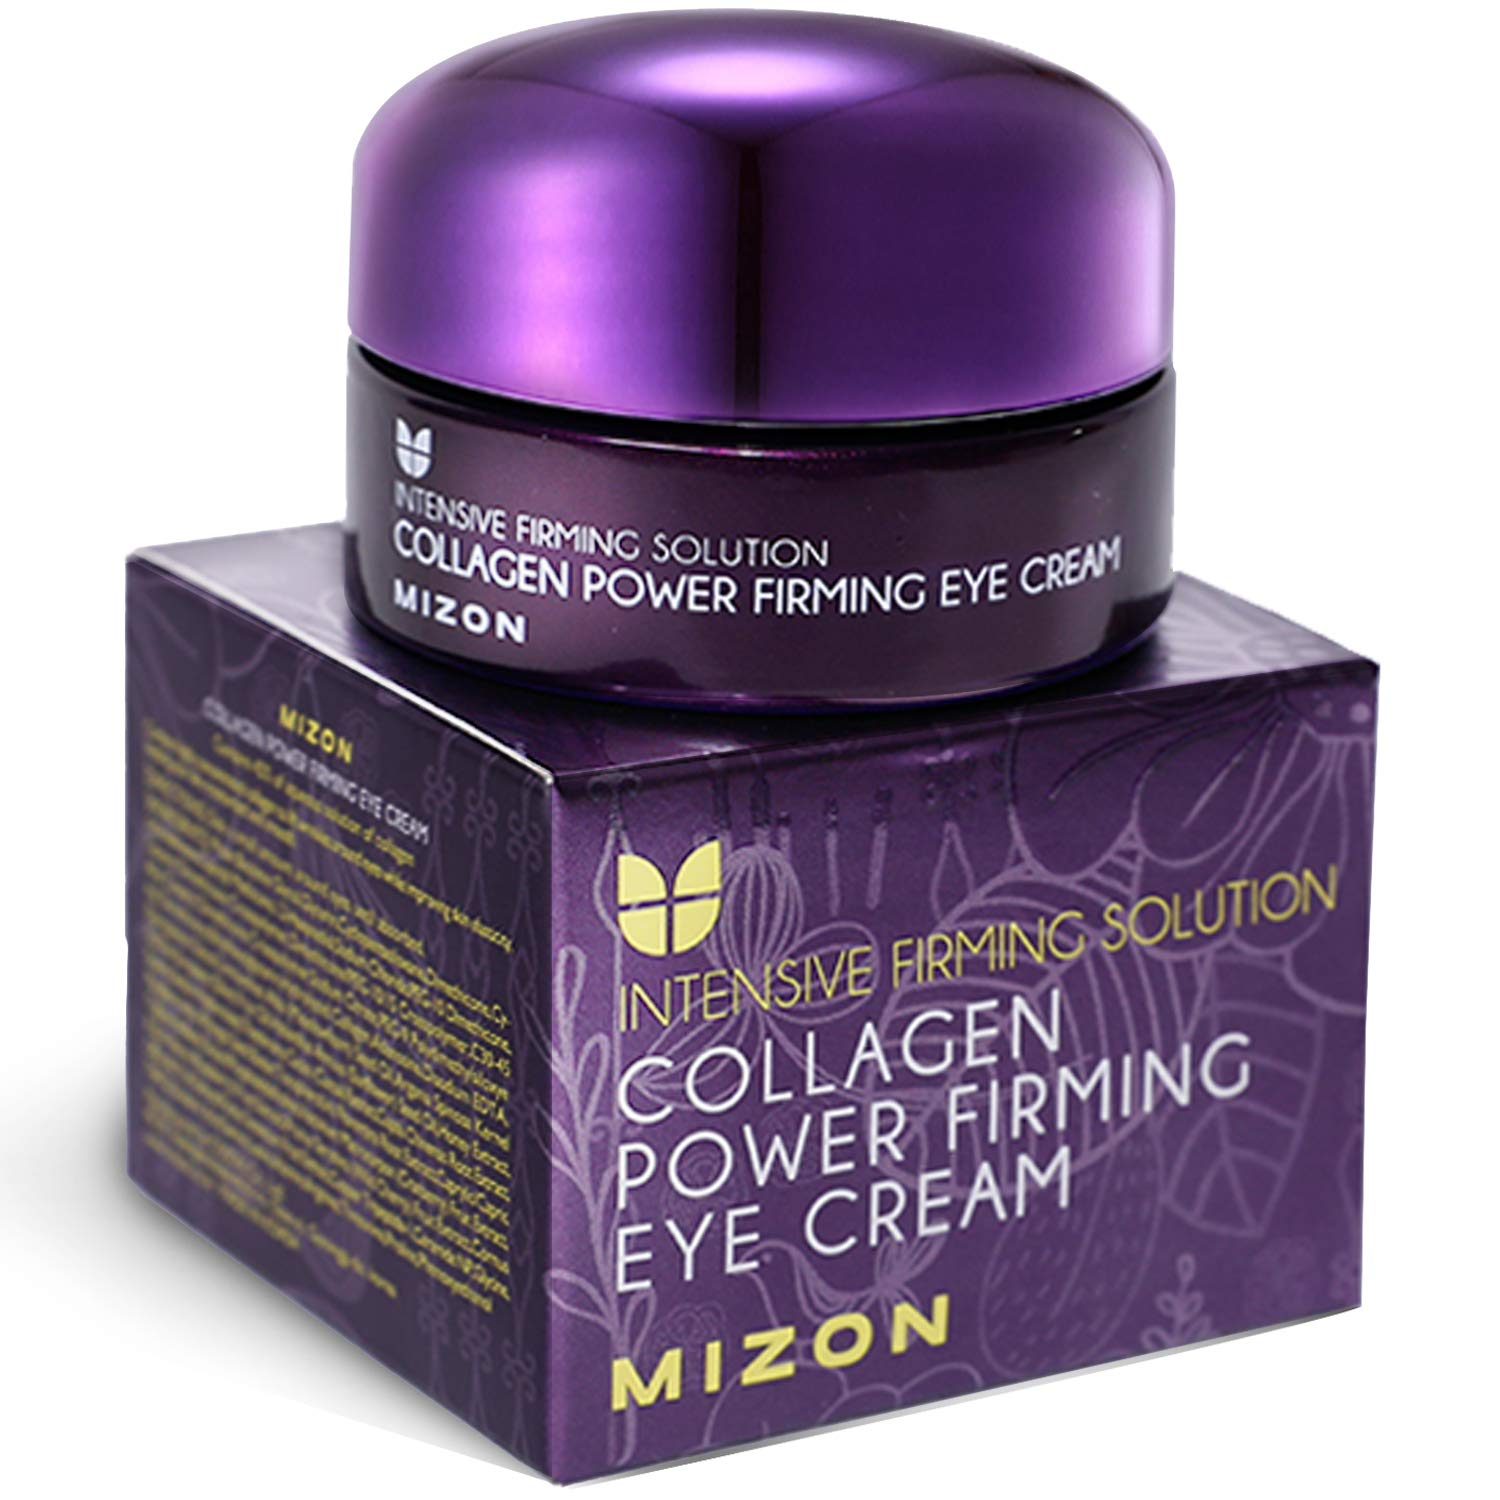 Collagen Power Firming Eye Cream by Mizon